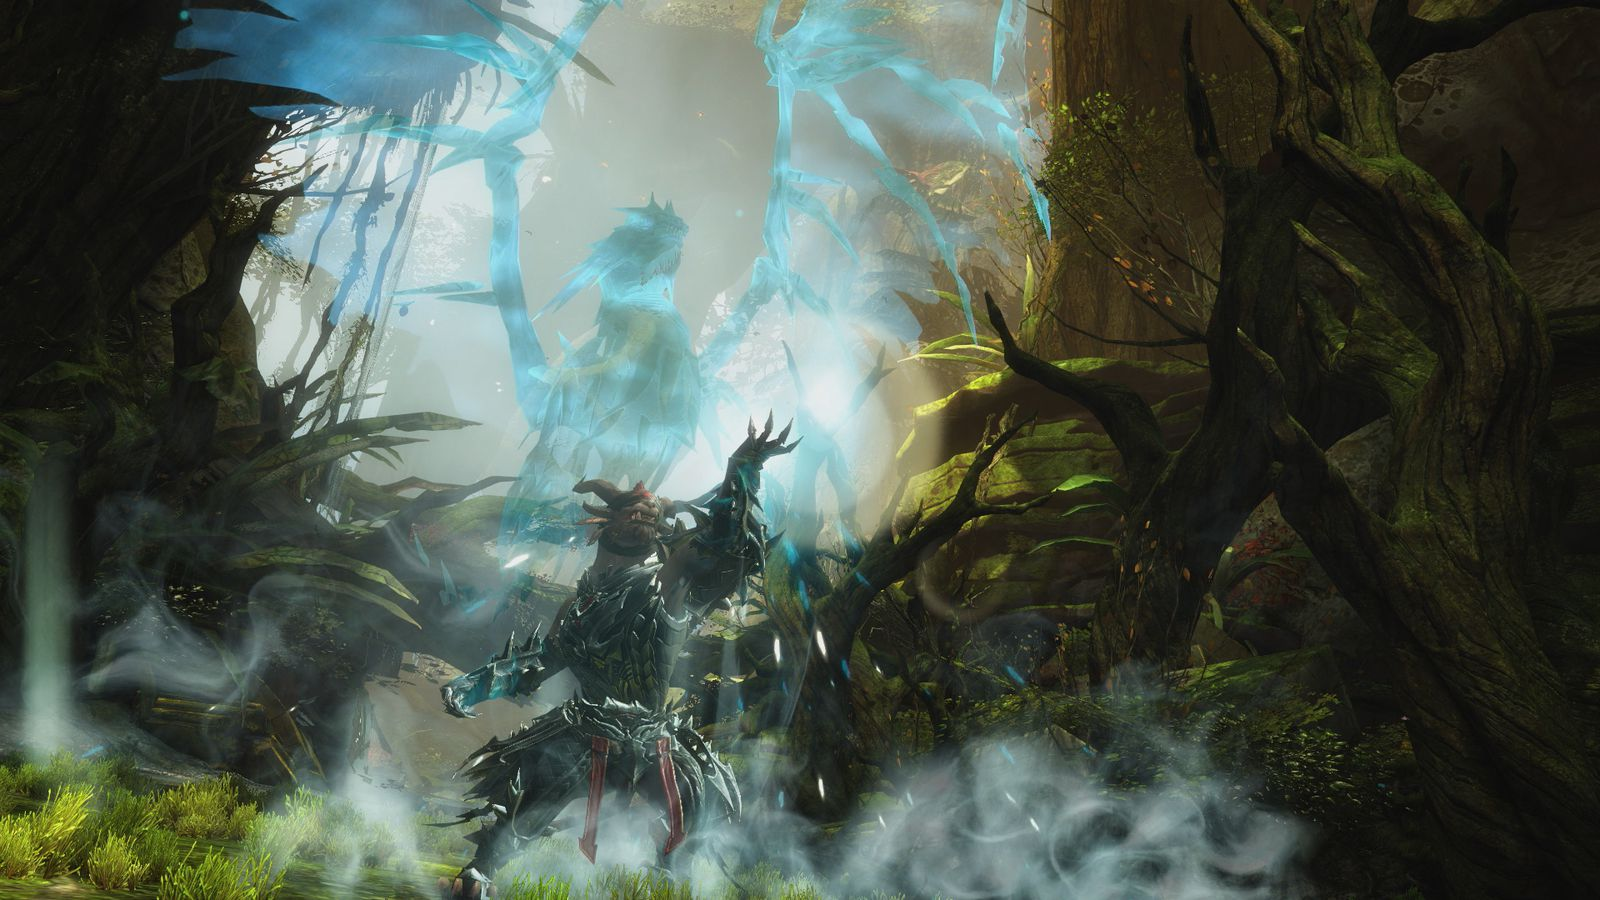 Introducing Guild Wars 2's new profession: the revenant